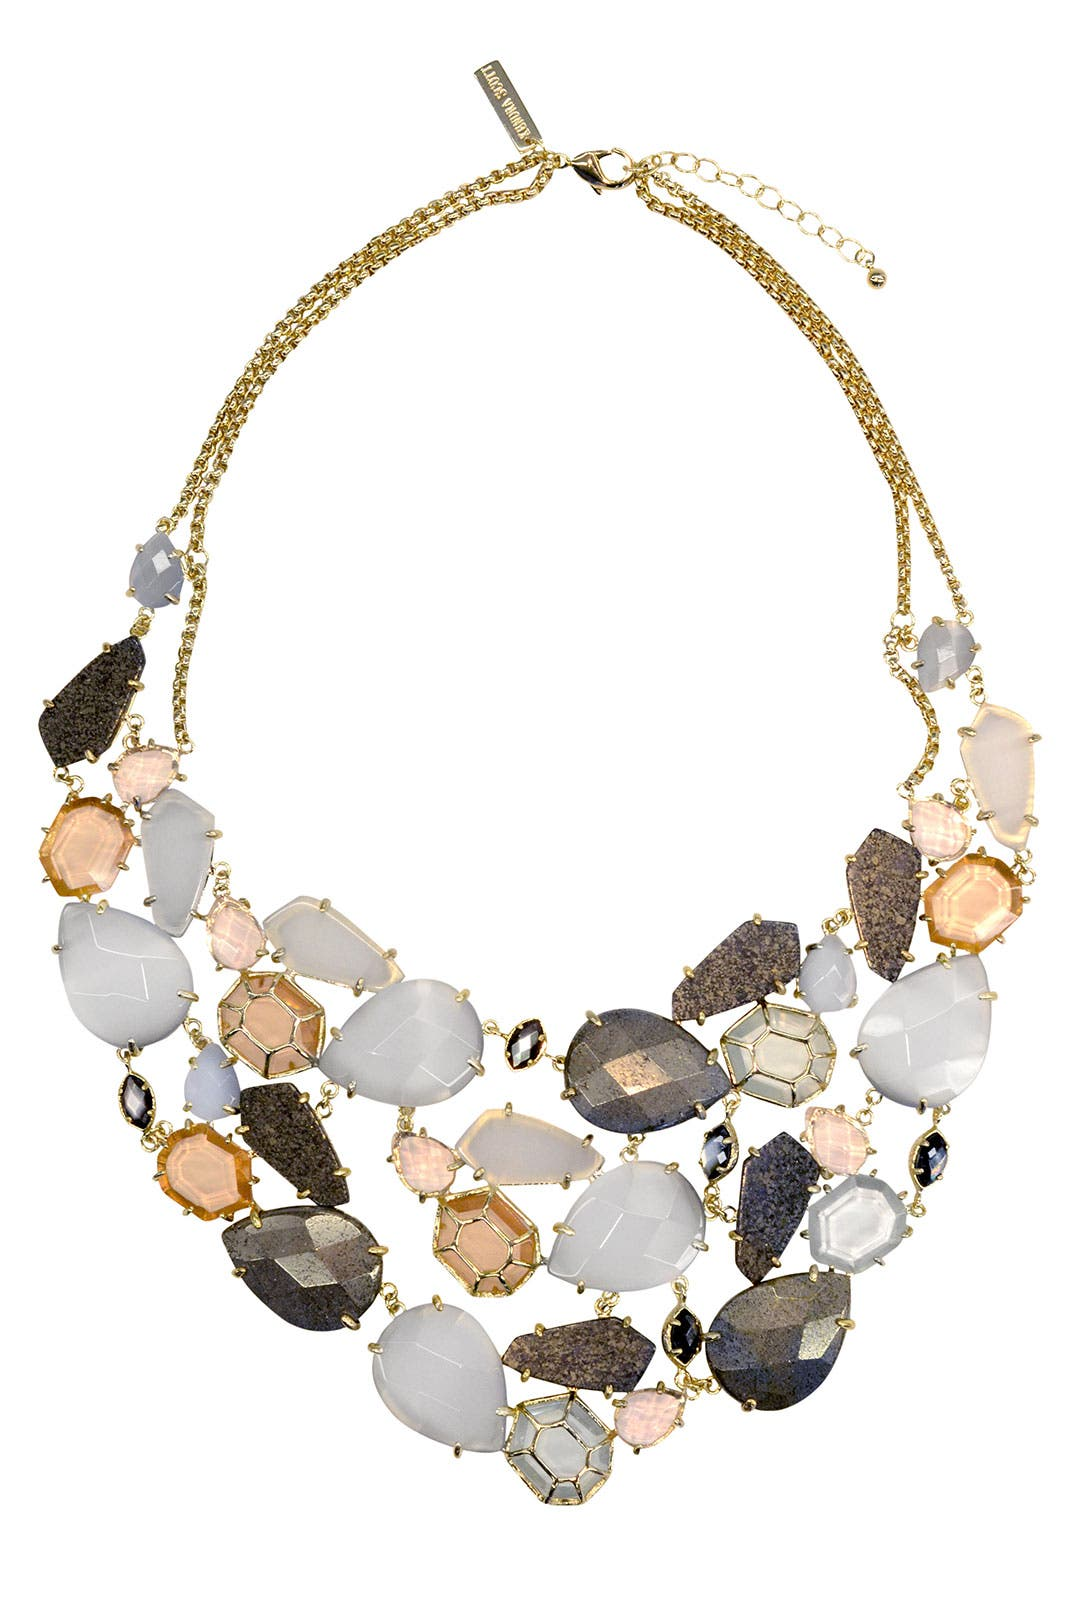 Starlet Estelle Necklace by Kendra Scott